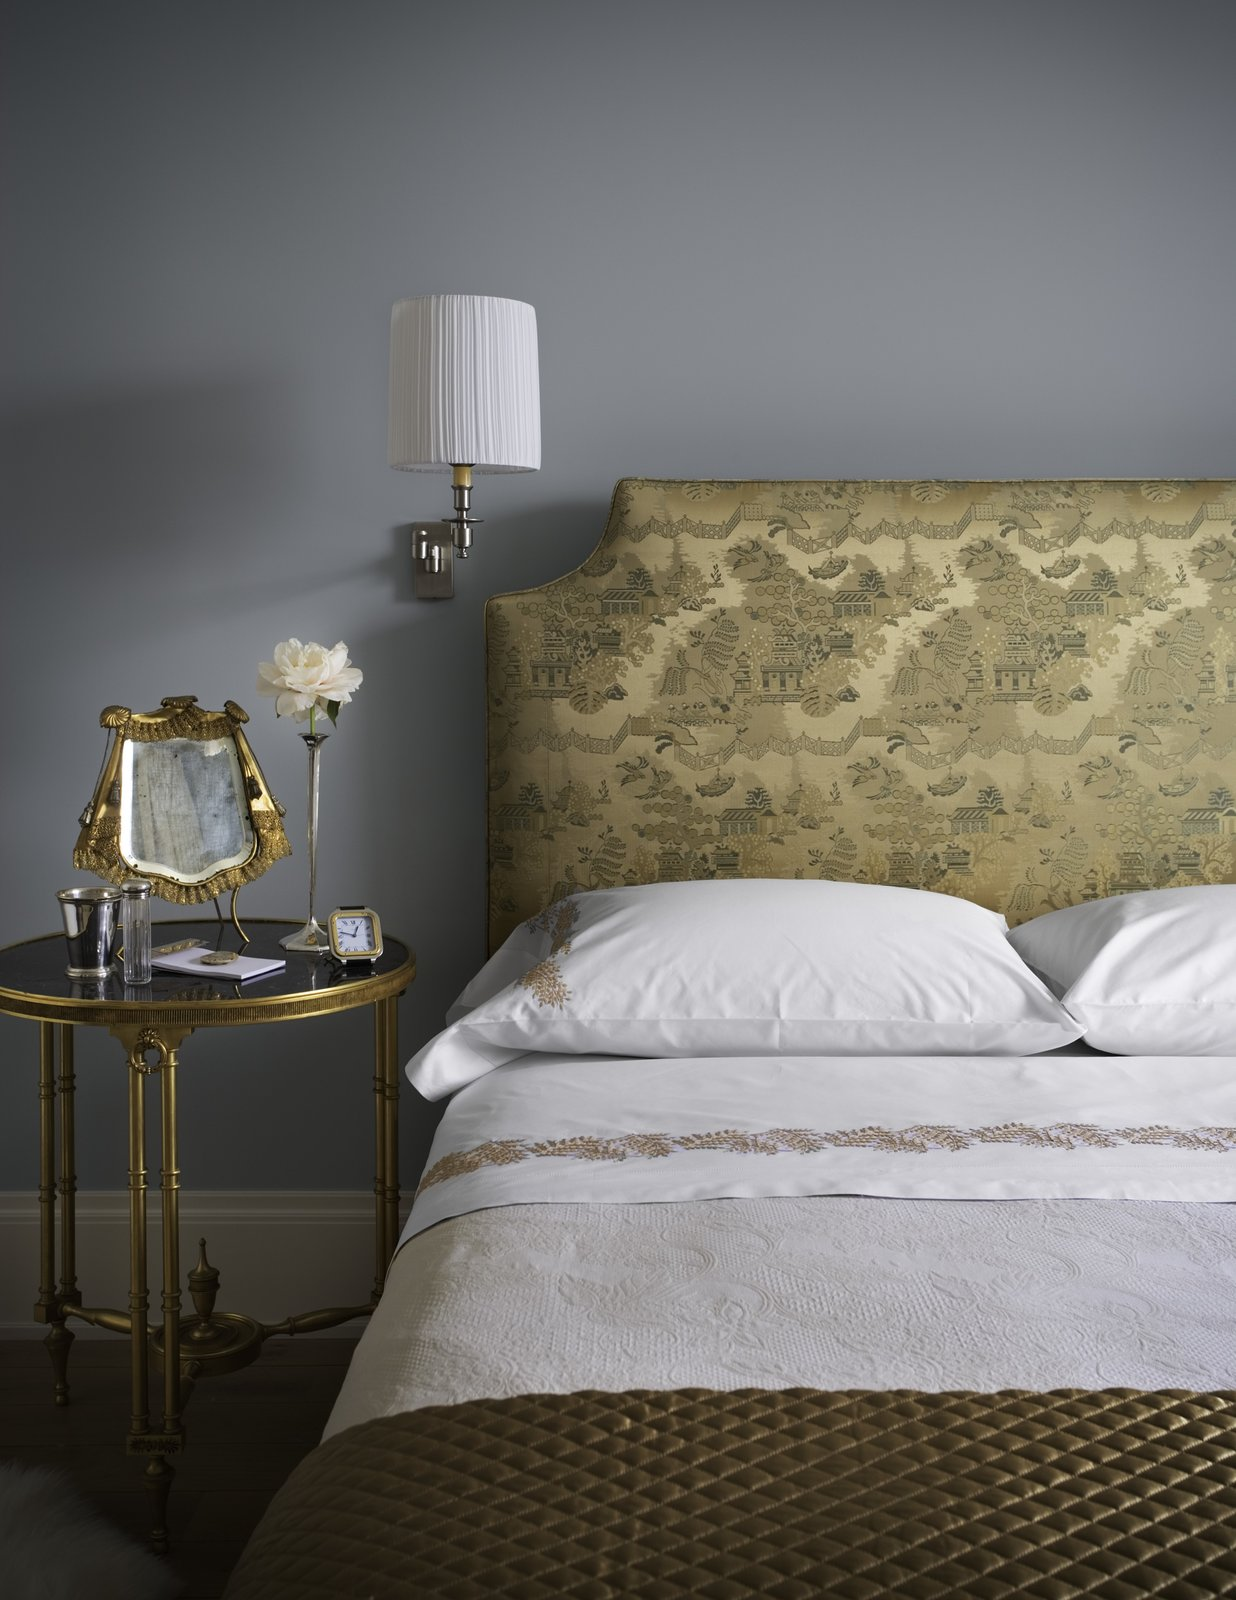 In her book, Interiors, the designer describes how a trip to Tibet delivered a vision of the serenity she wanted to recreate in her own living space. Part of this involved relocating her bedroom to the rear of the building. The Scalamandré fabric used on the headboard and bed skirt fabric was chosen because the colors and patterns recall sepia-toned prints of the ancient city of Machu Picchu.  Bedrooms by Dwell from An Interior Designer's Artful and Art-Filled NYC Town House